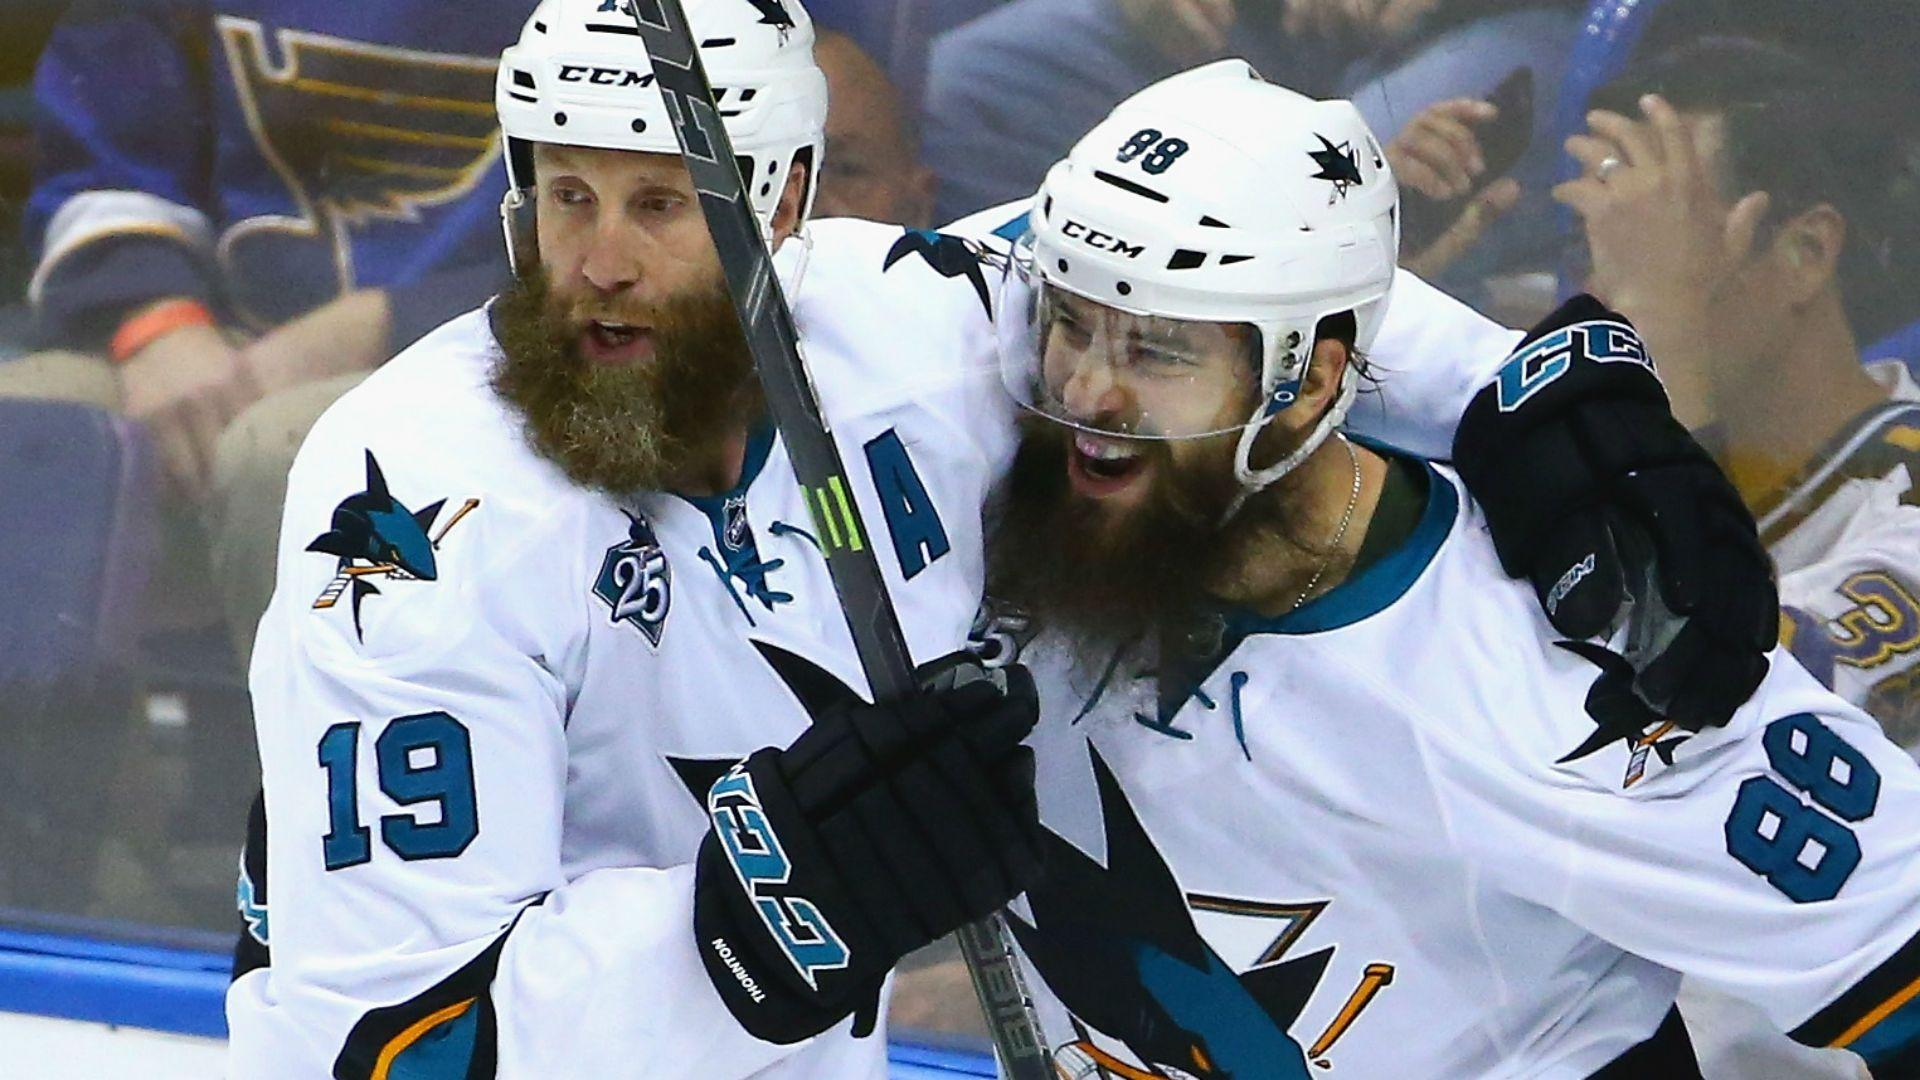 Stanley Cup playoffs three stars: Brent Burns doubles up as Sharks